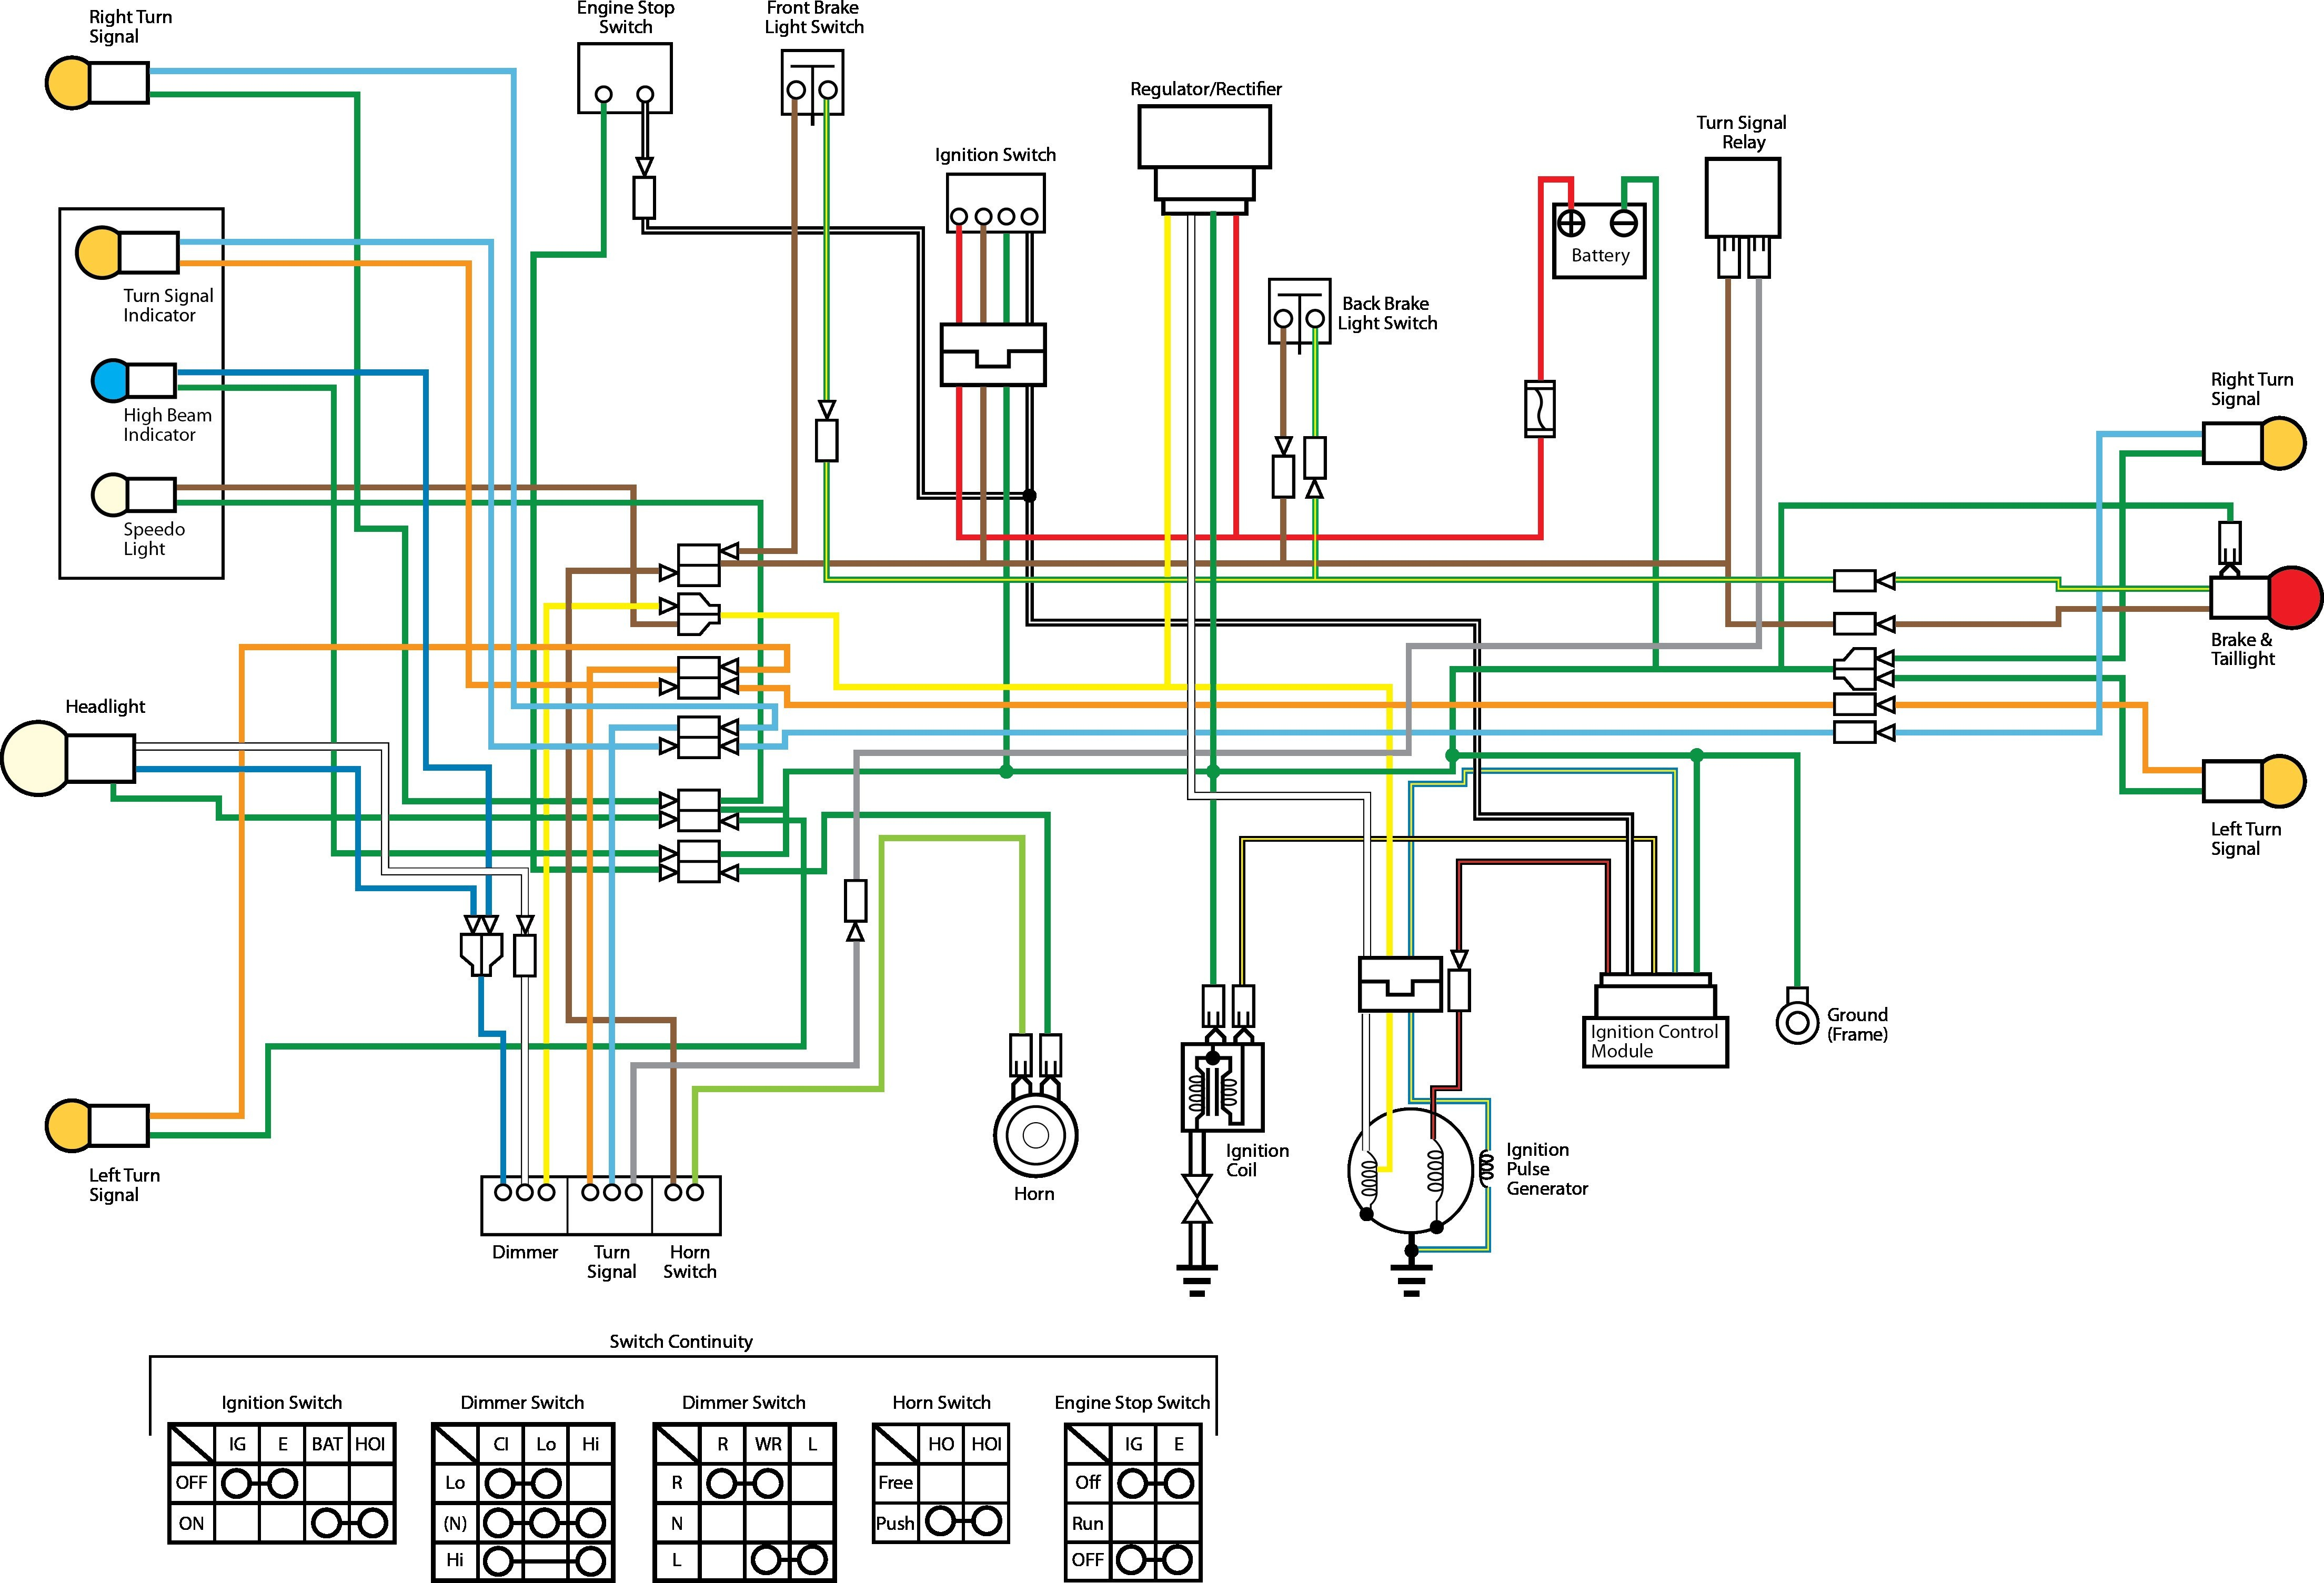 Superb Stinson Wiring Diagram Wiring Diagram Online Wiring Cloud Faunaidewilluminateatxorg